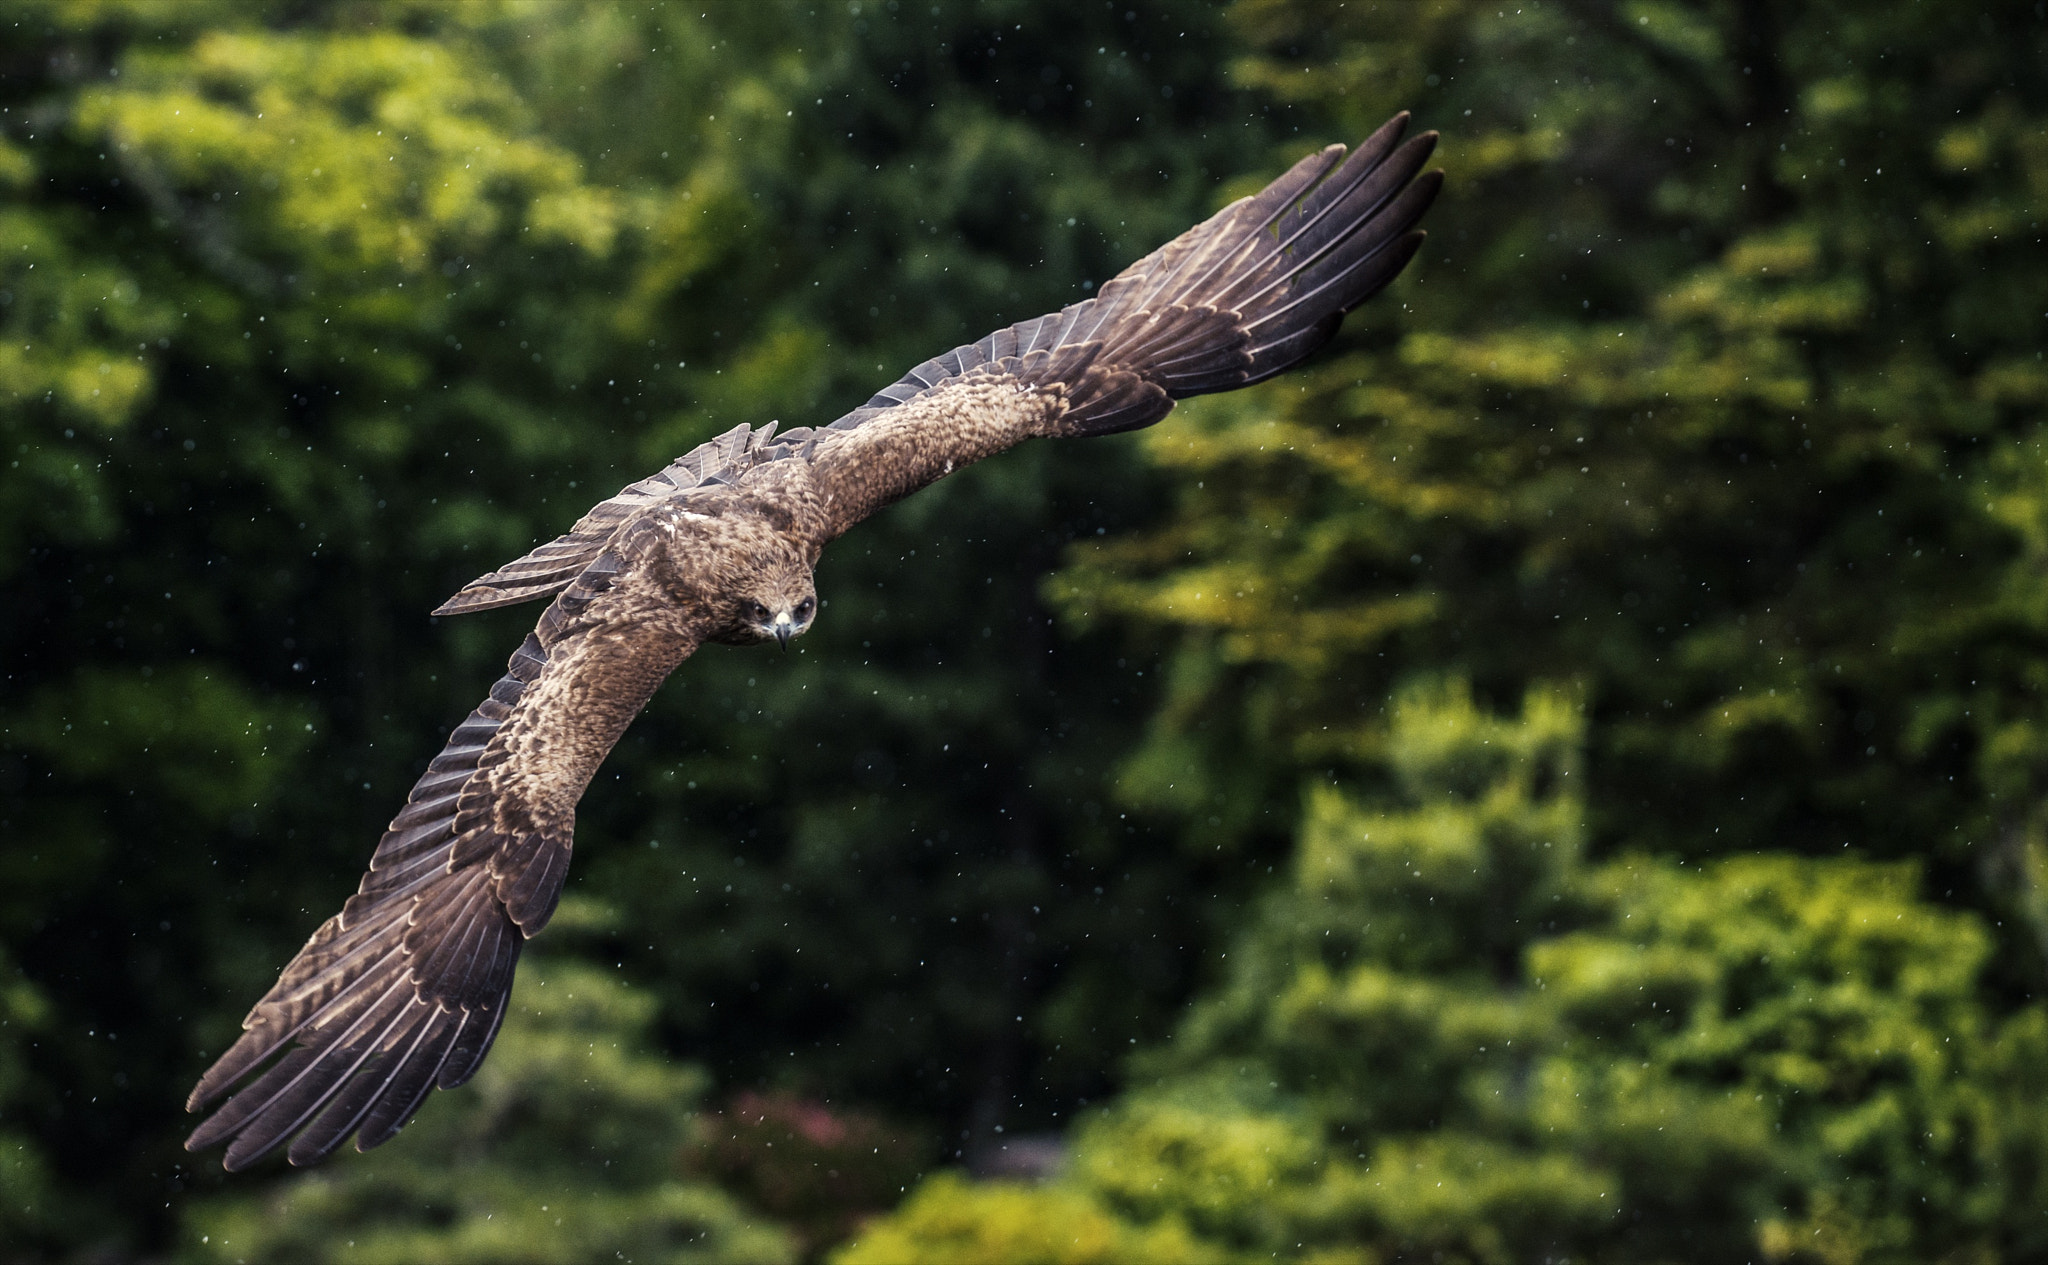 Photograph Flying in for the kill by hugh dornan on 500px